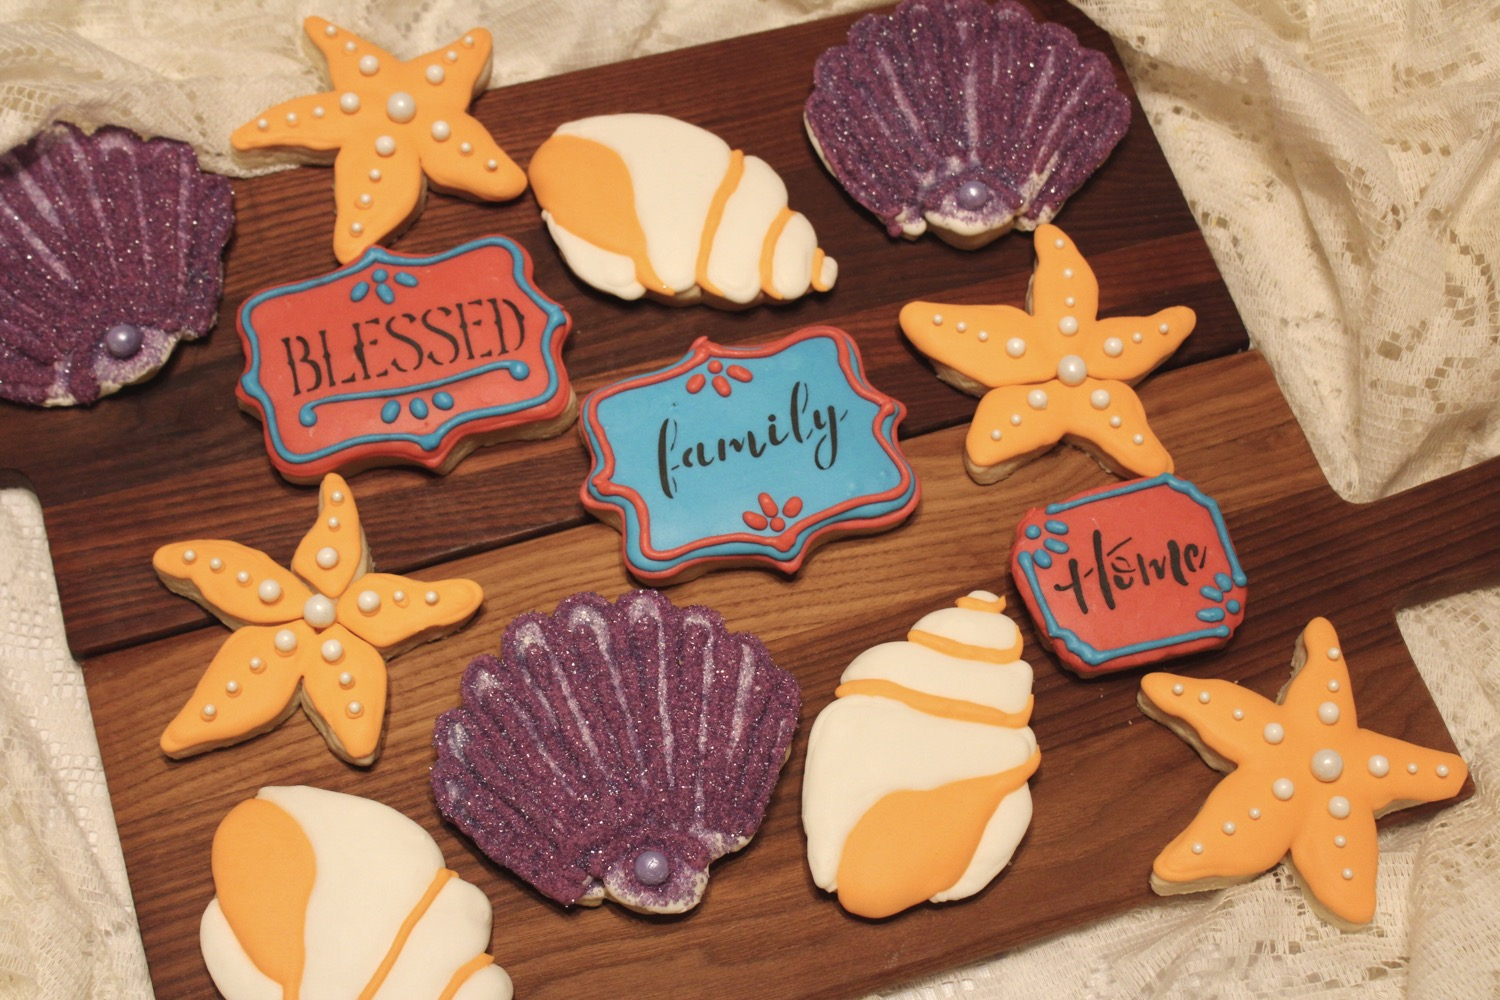 Seashells & Family Sugar Cookies